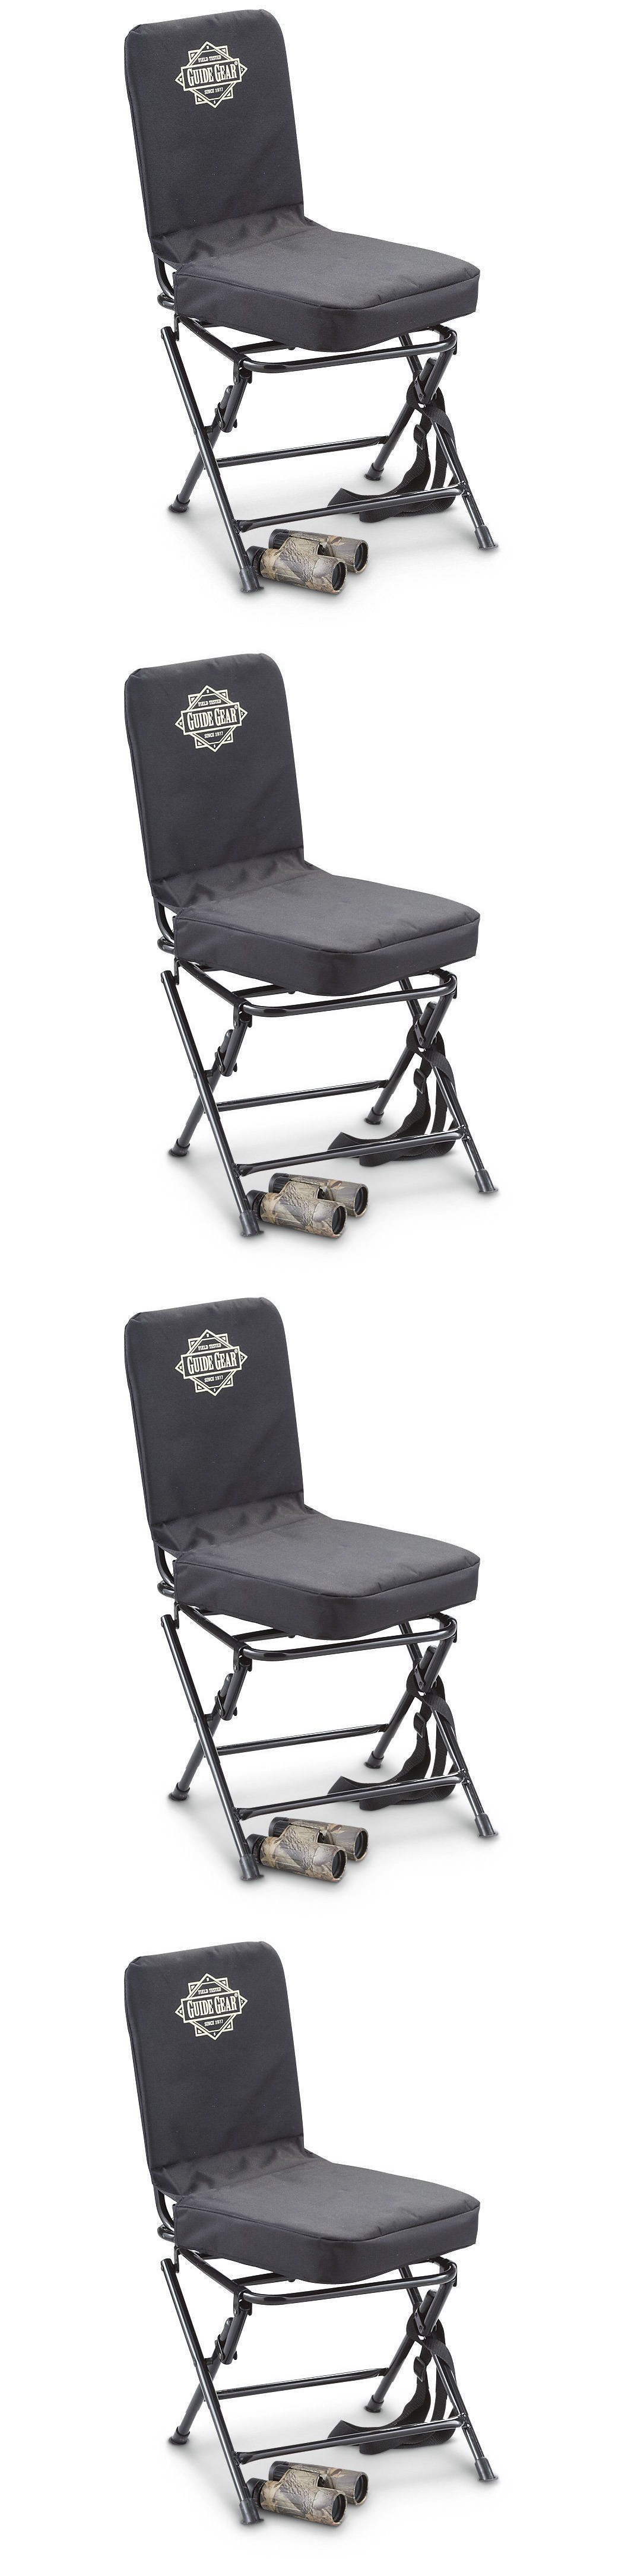 Seats and Chairs Portable Swivel Hunting Chair Folding Deer